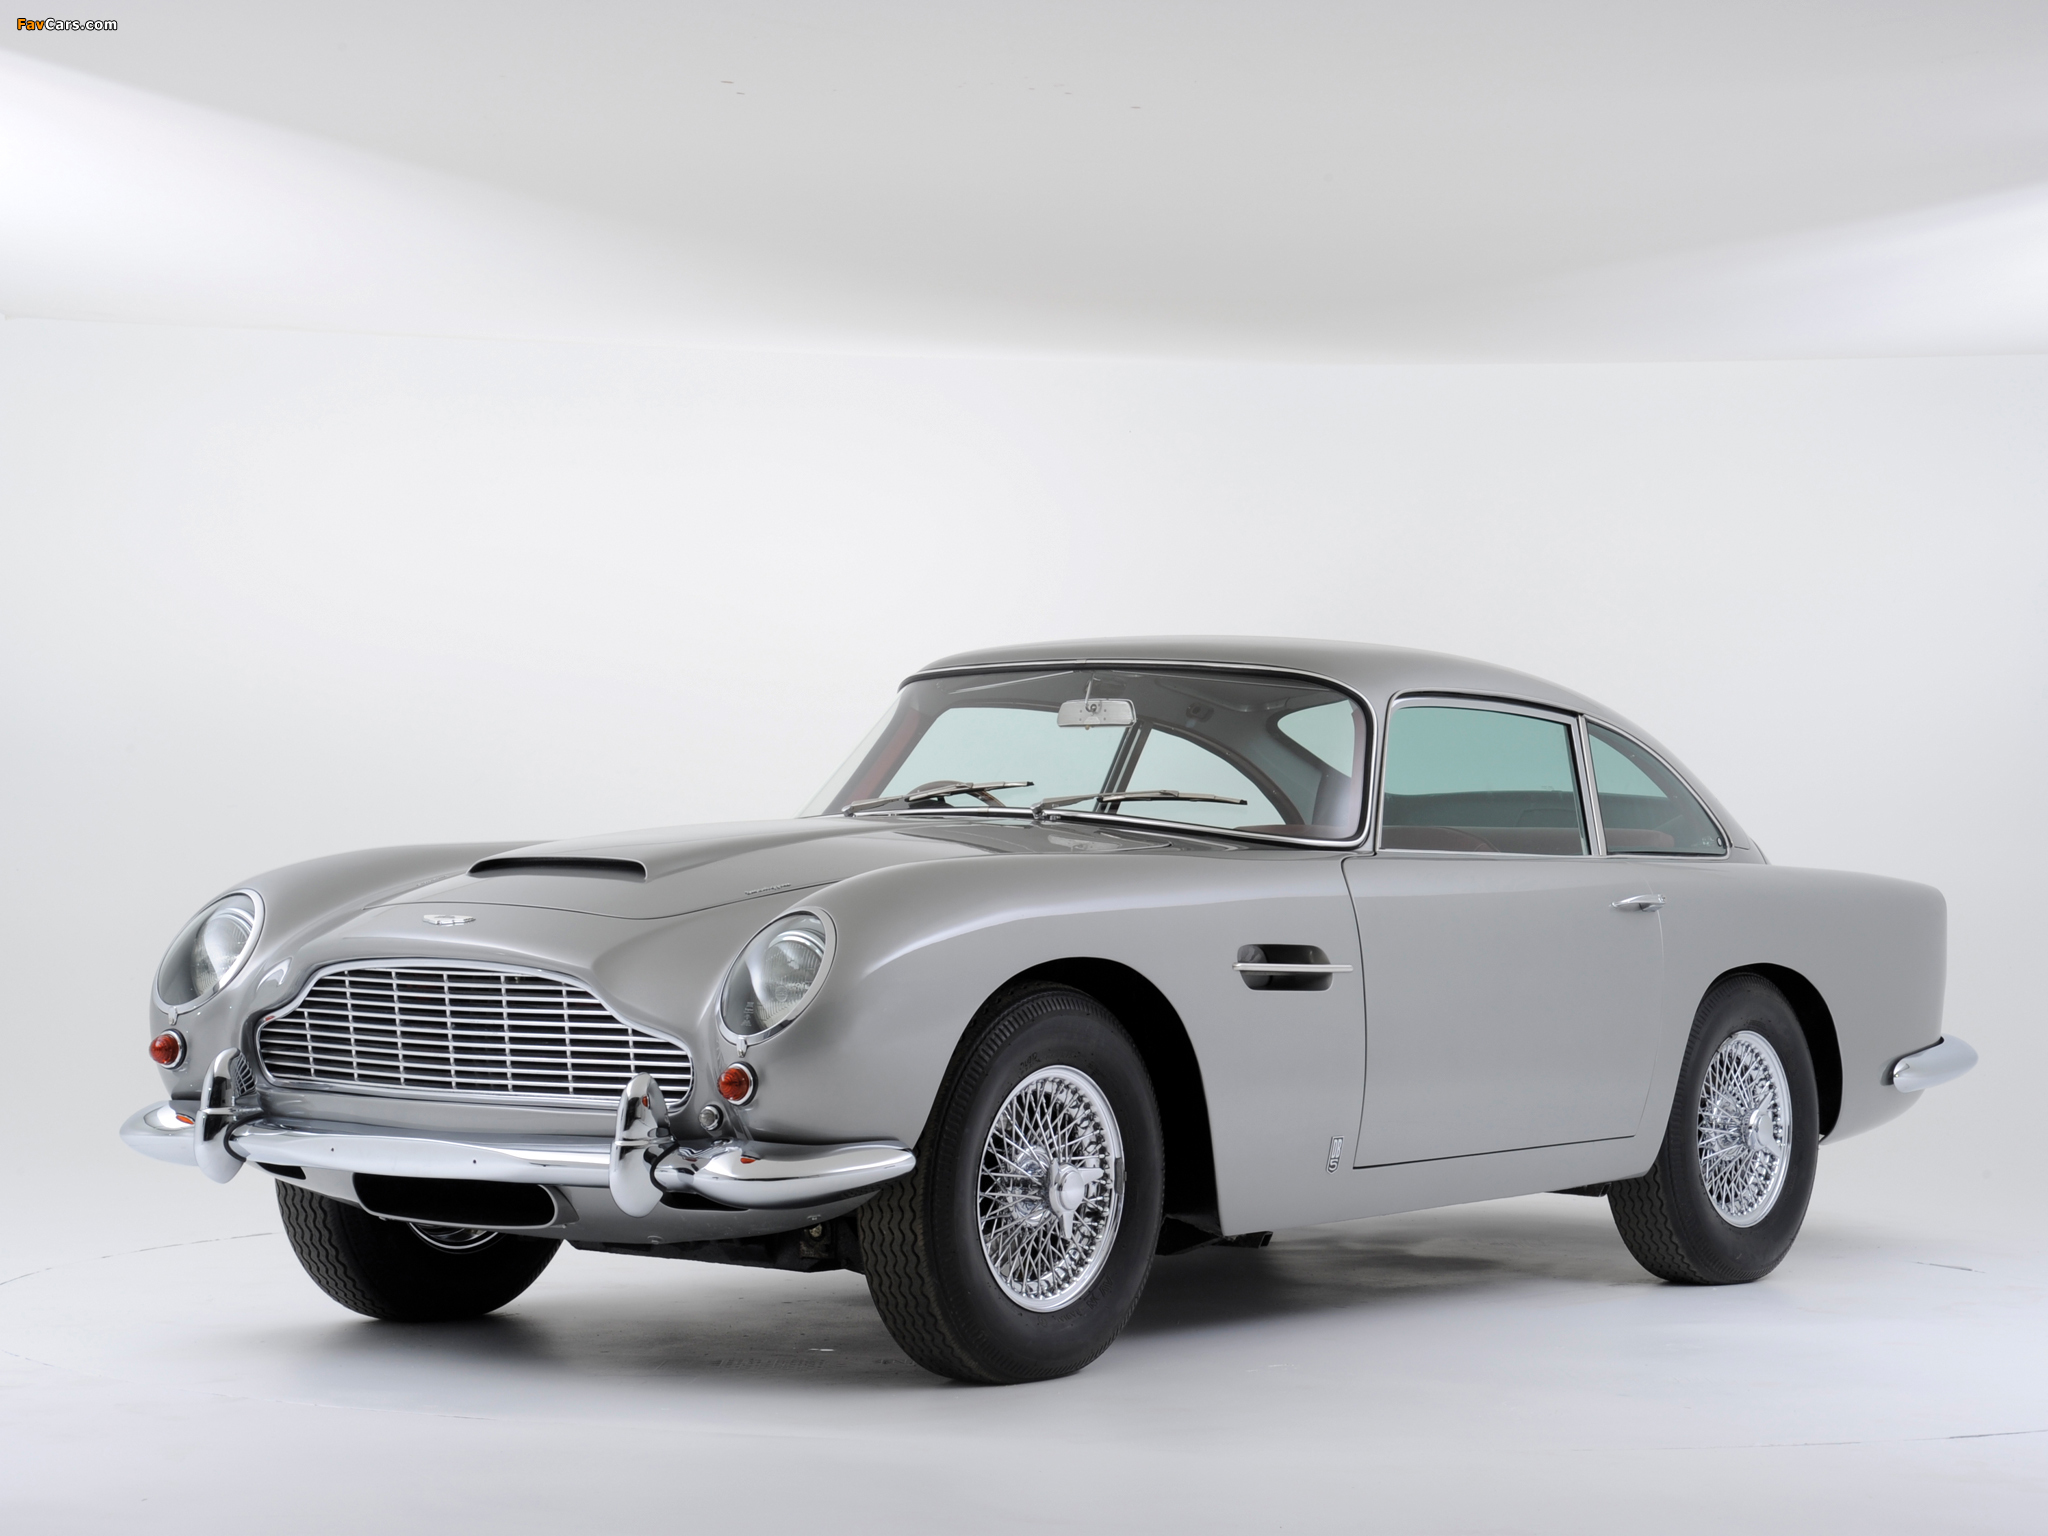 1963 aston martin db5 information and photos momentcar. Black Bedroom Furniture Sets. Home Design Ideas